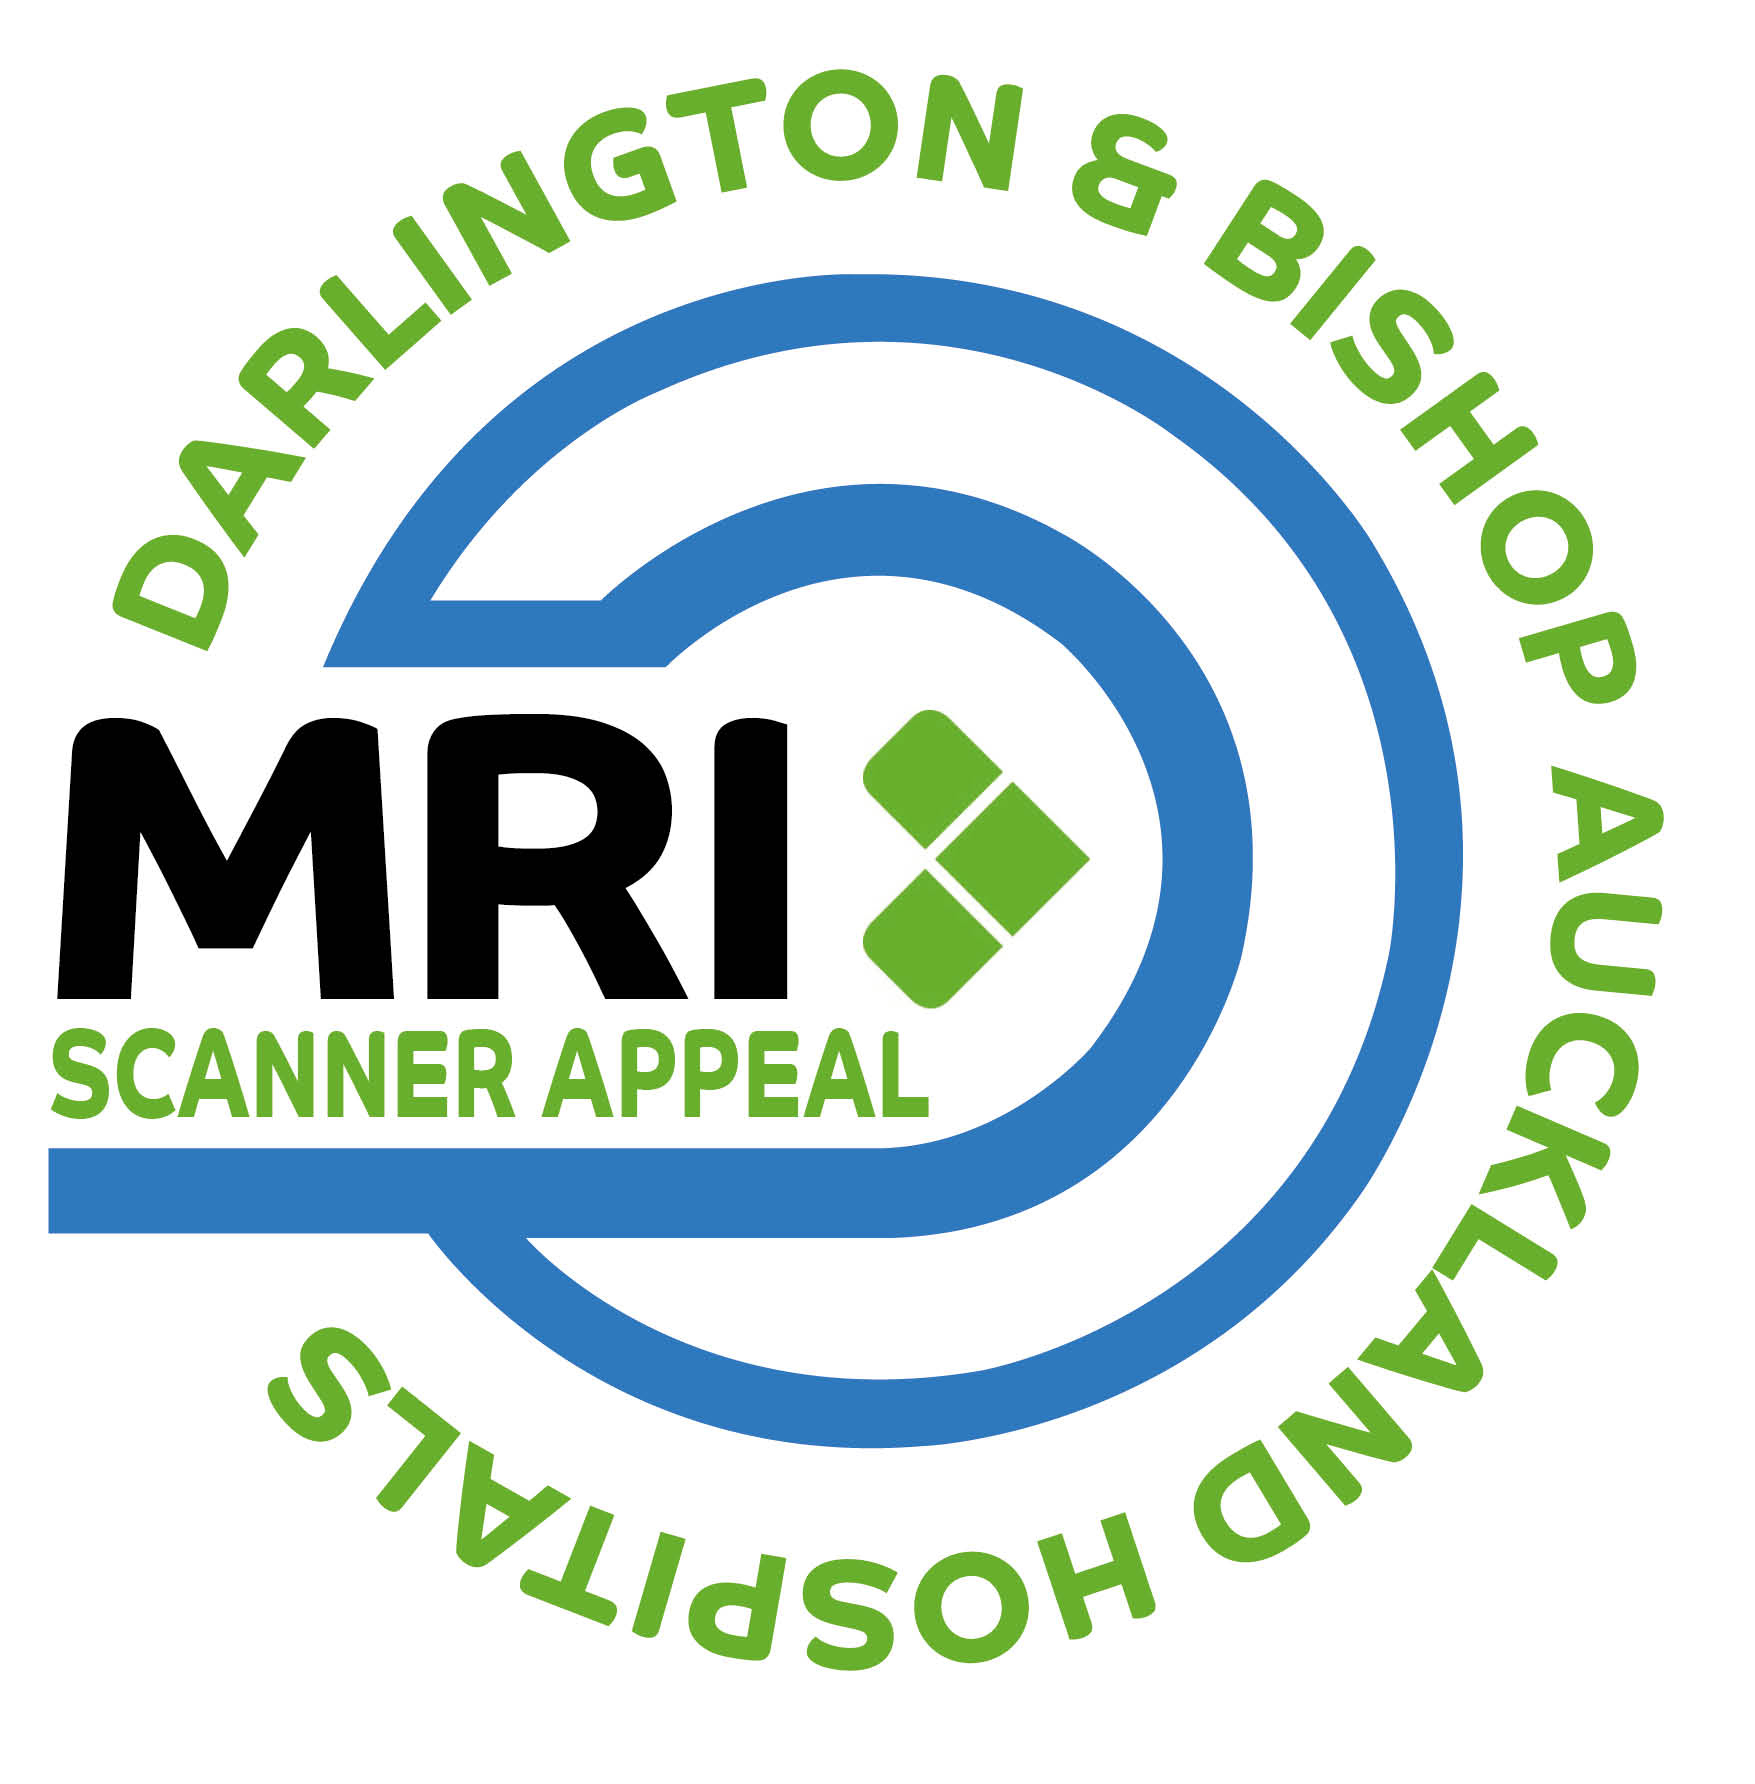 Charity Concert for MRI Scanner Appeal